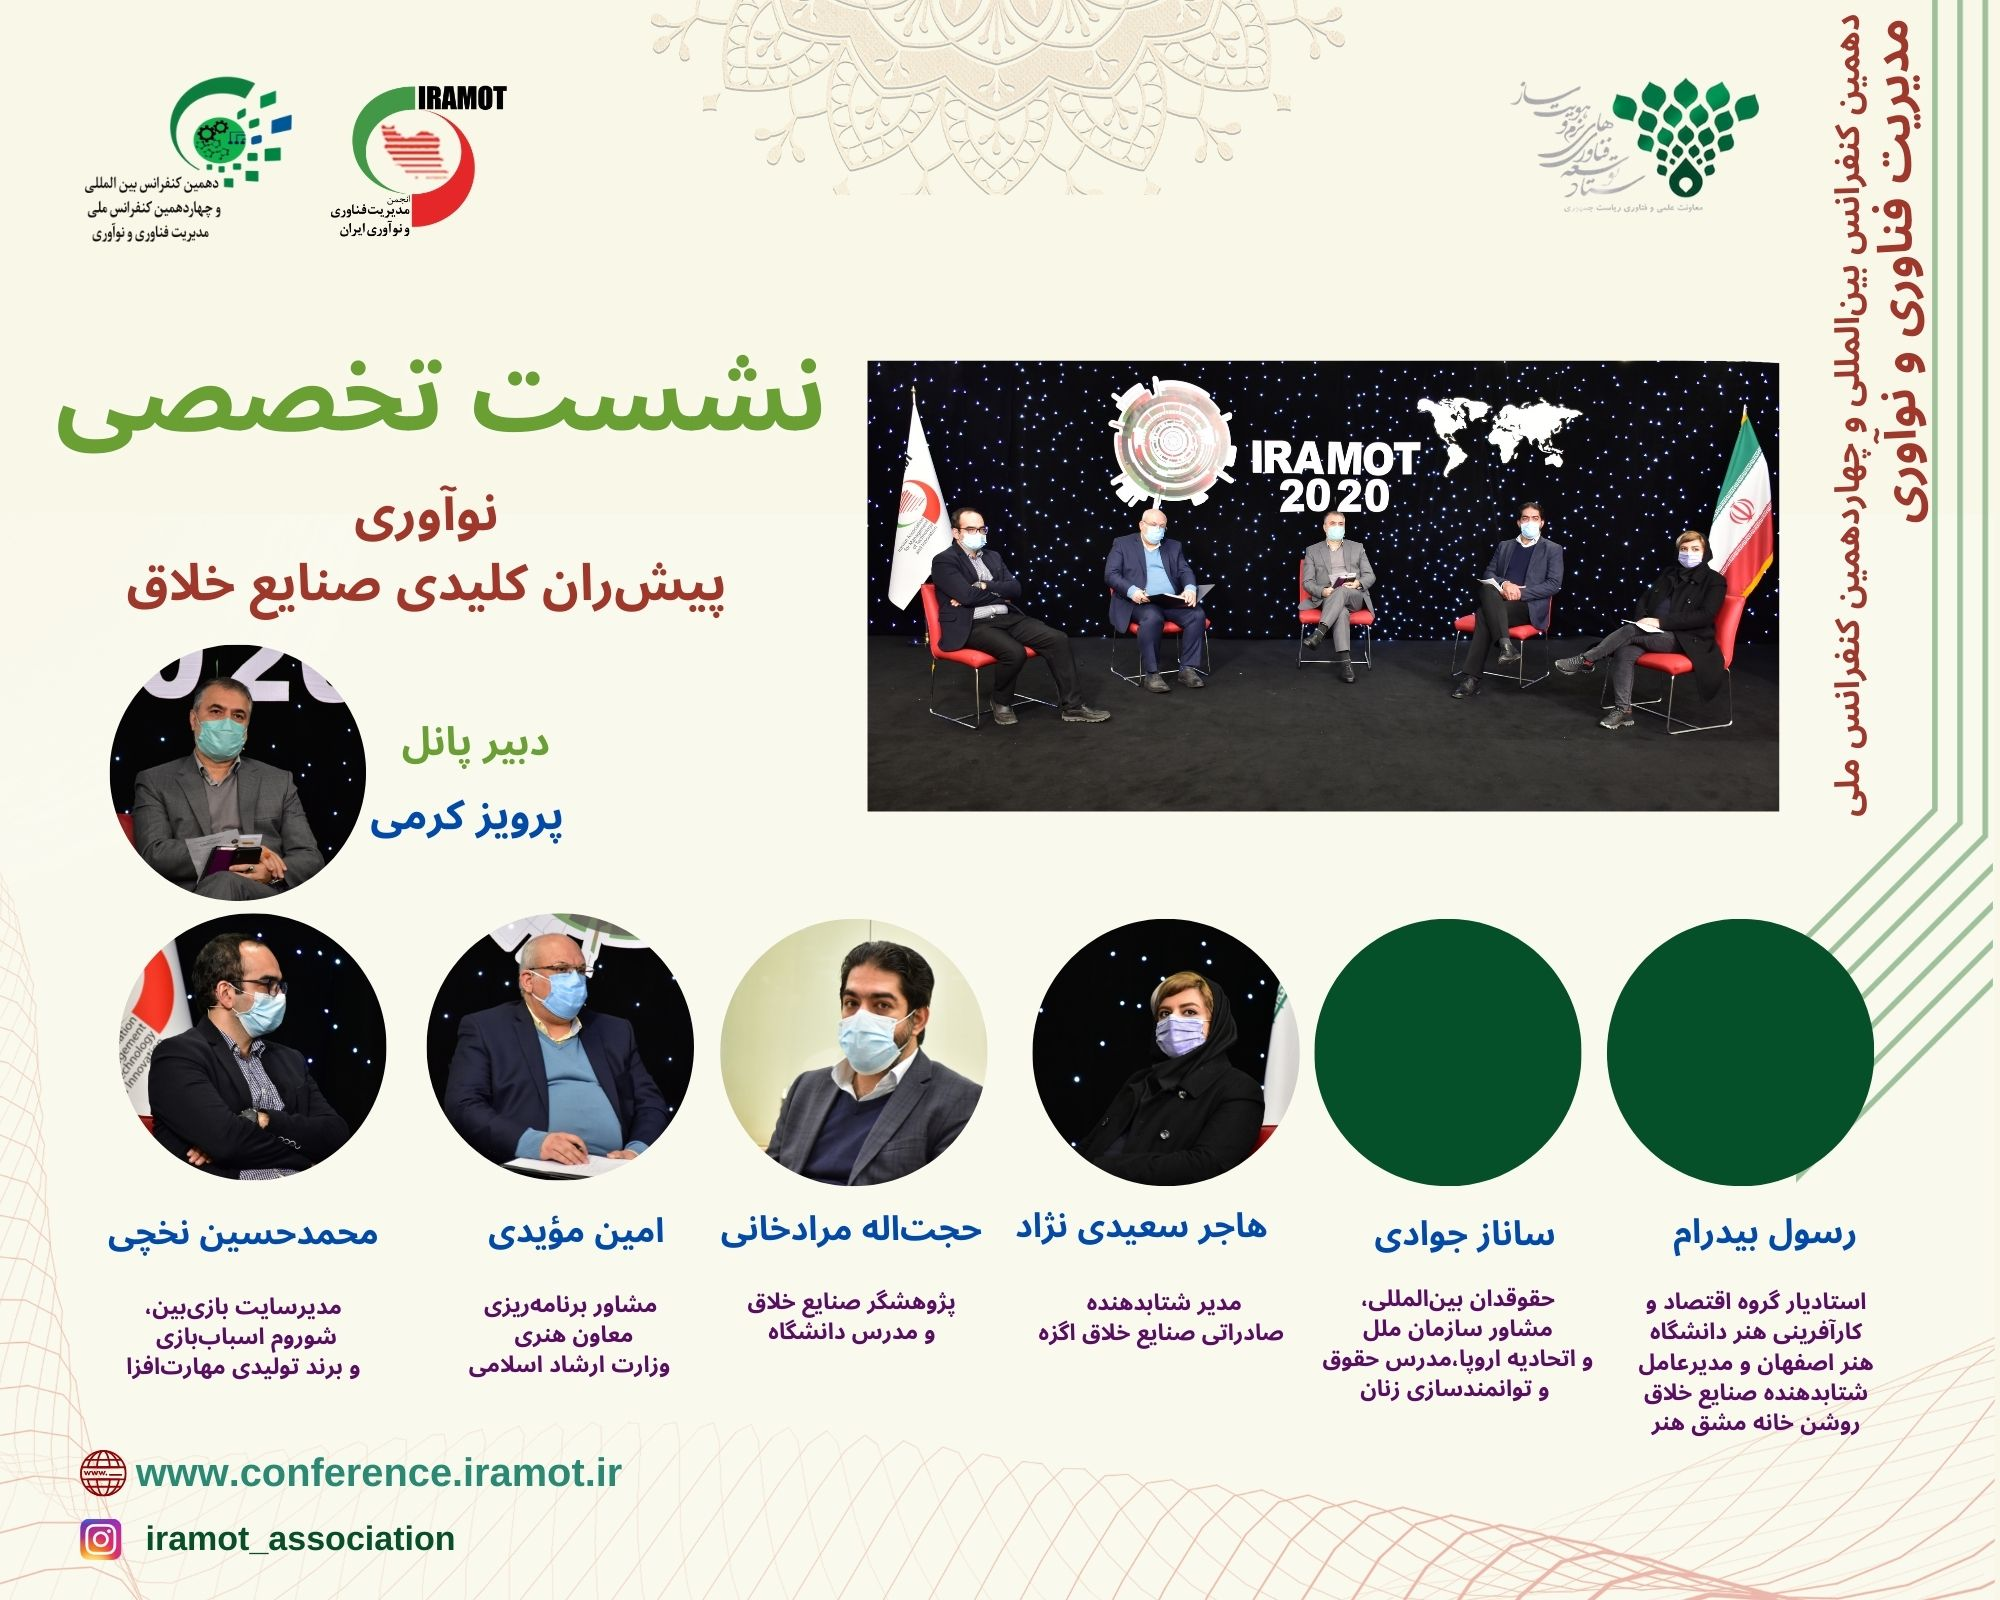 http://www.conference.iramot.ir/wp-content/uploads/2020/12/پانل-تخصصی-1-1.jpg